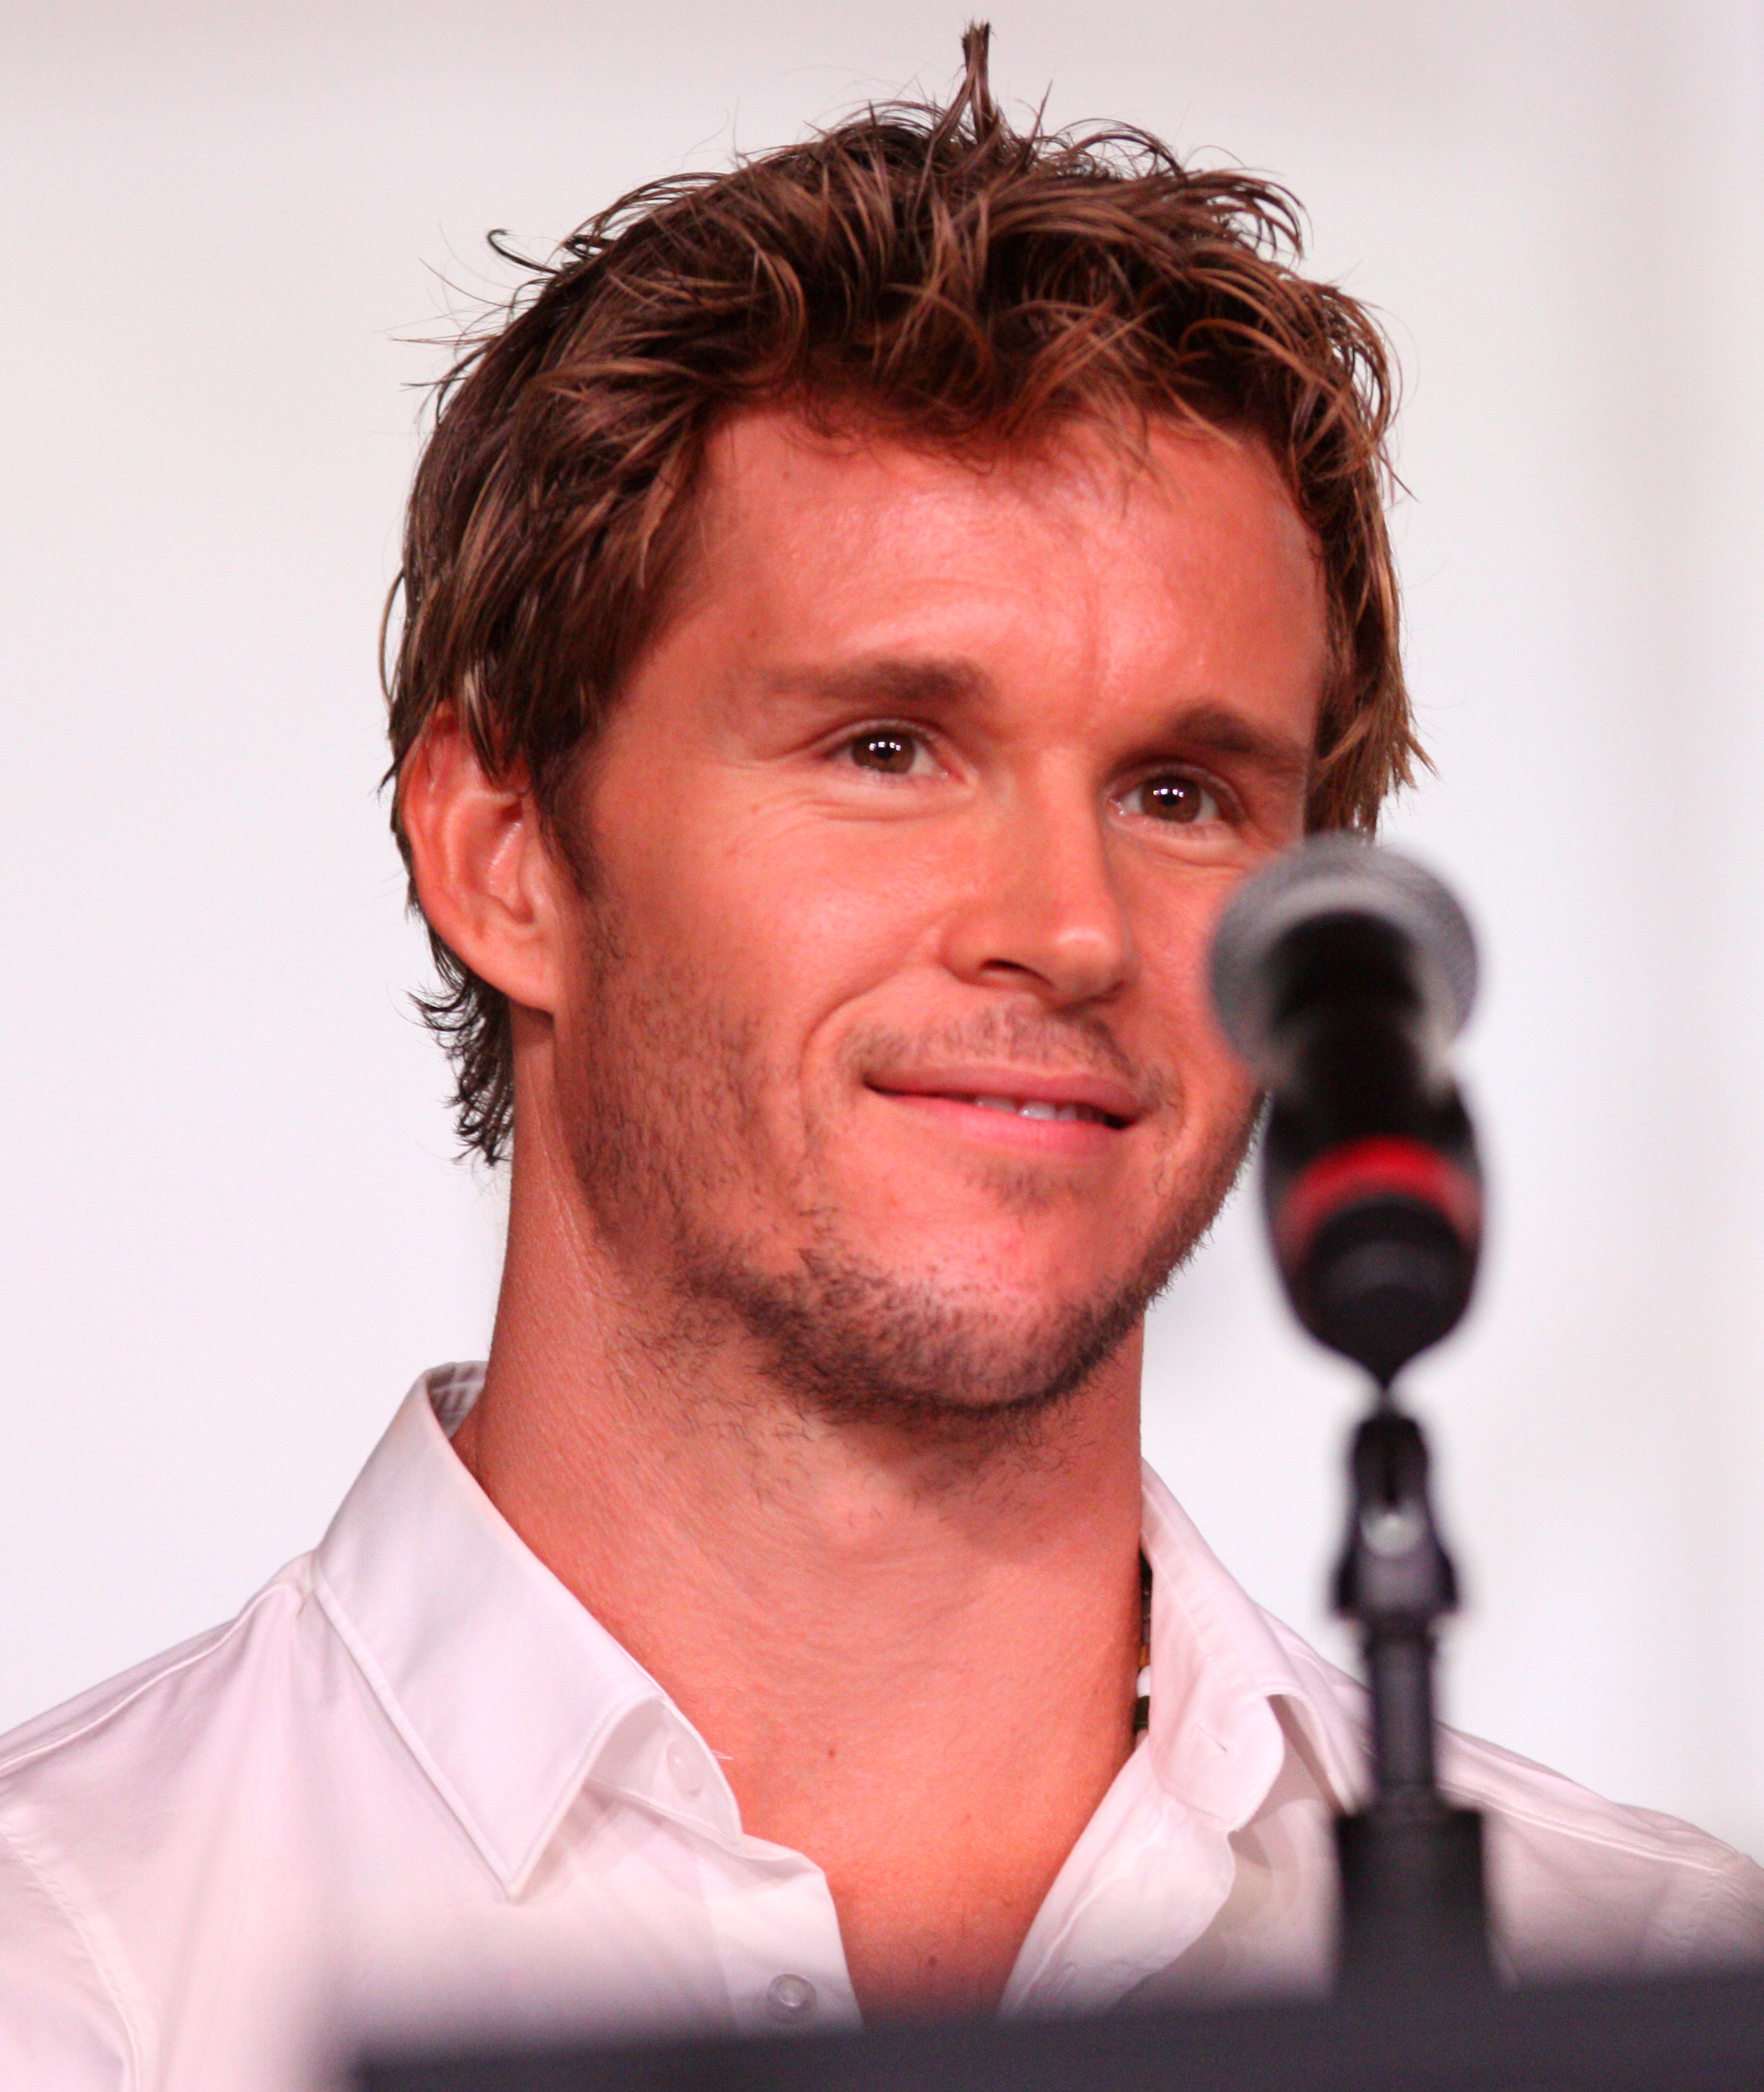 The 44-year old son of father (?) and mother(?) Ryan Kwanten in 2021 photo. Ryan Kwanten earned a  million dollar salary - leaving the net worth at 3 million in 2021